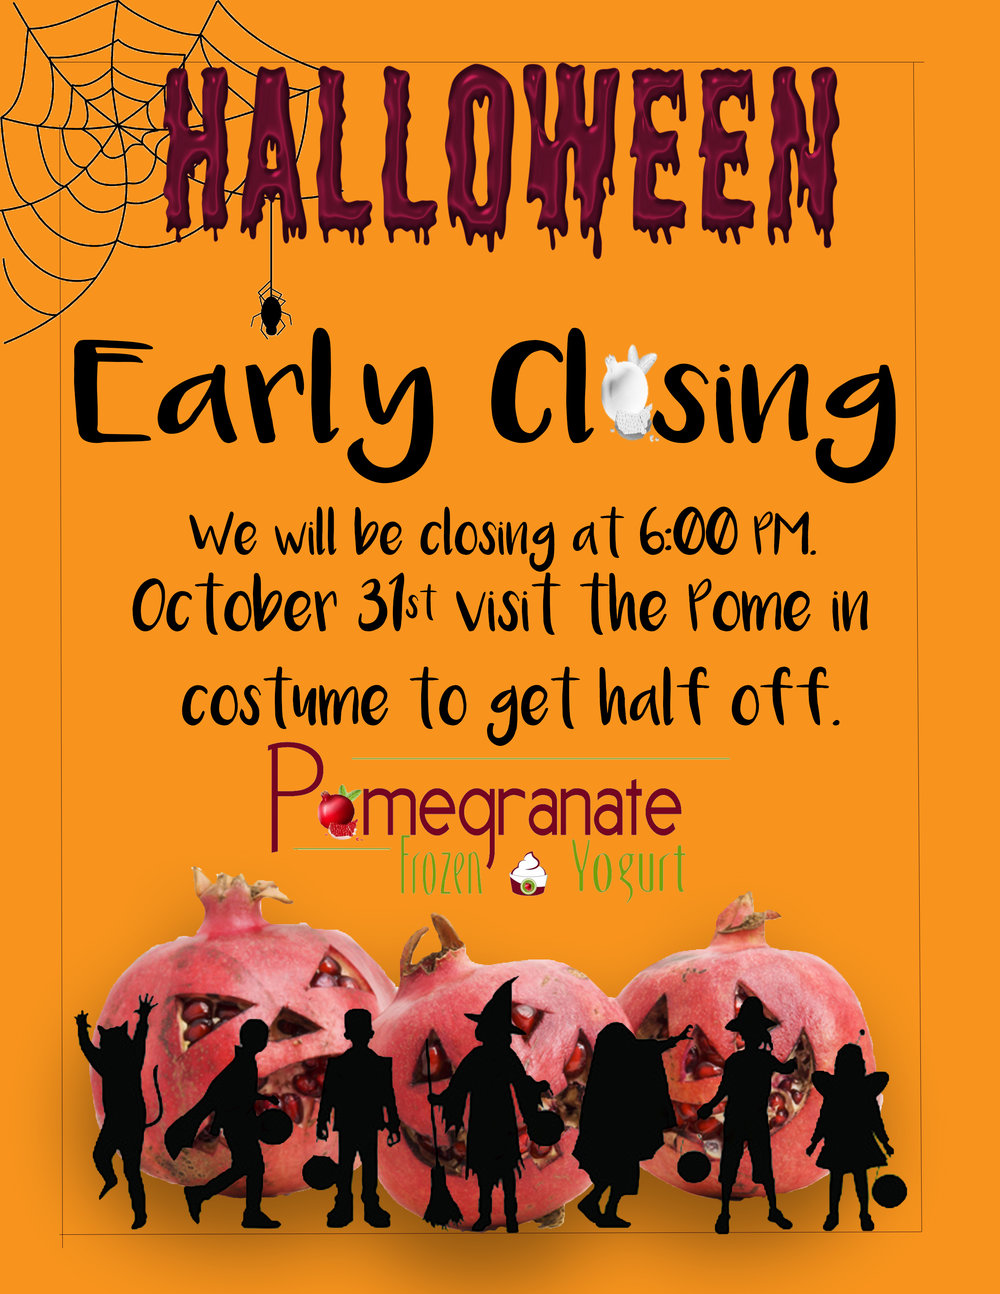 halloween Early Close flyer_2018.jpg